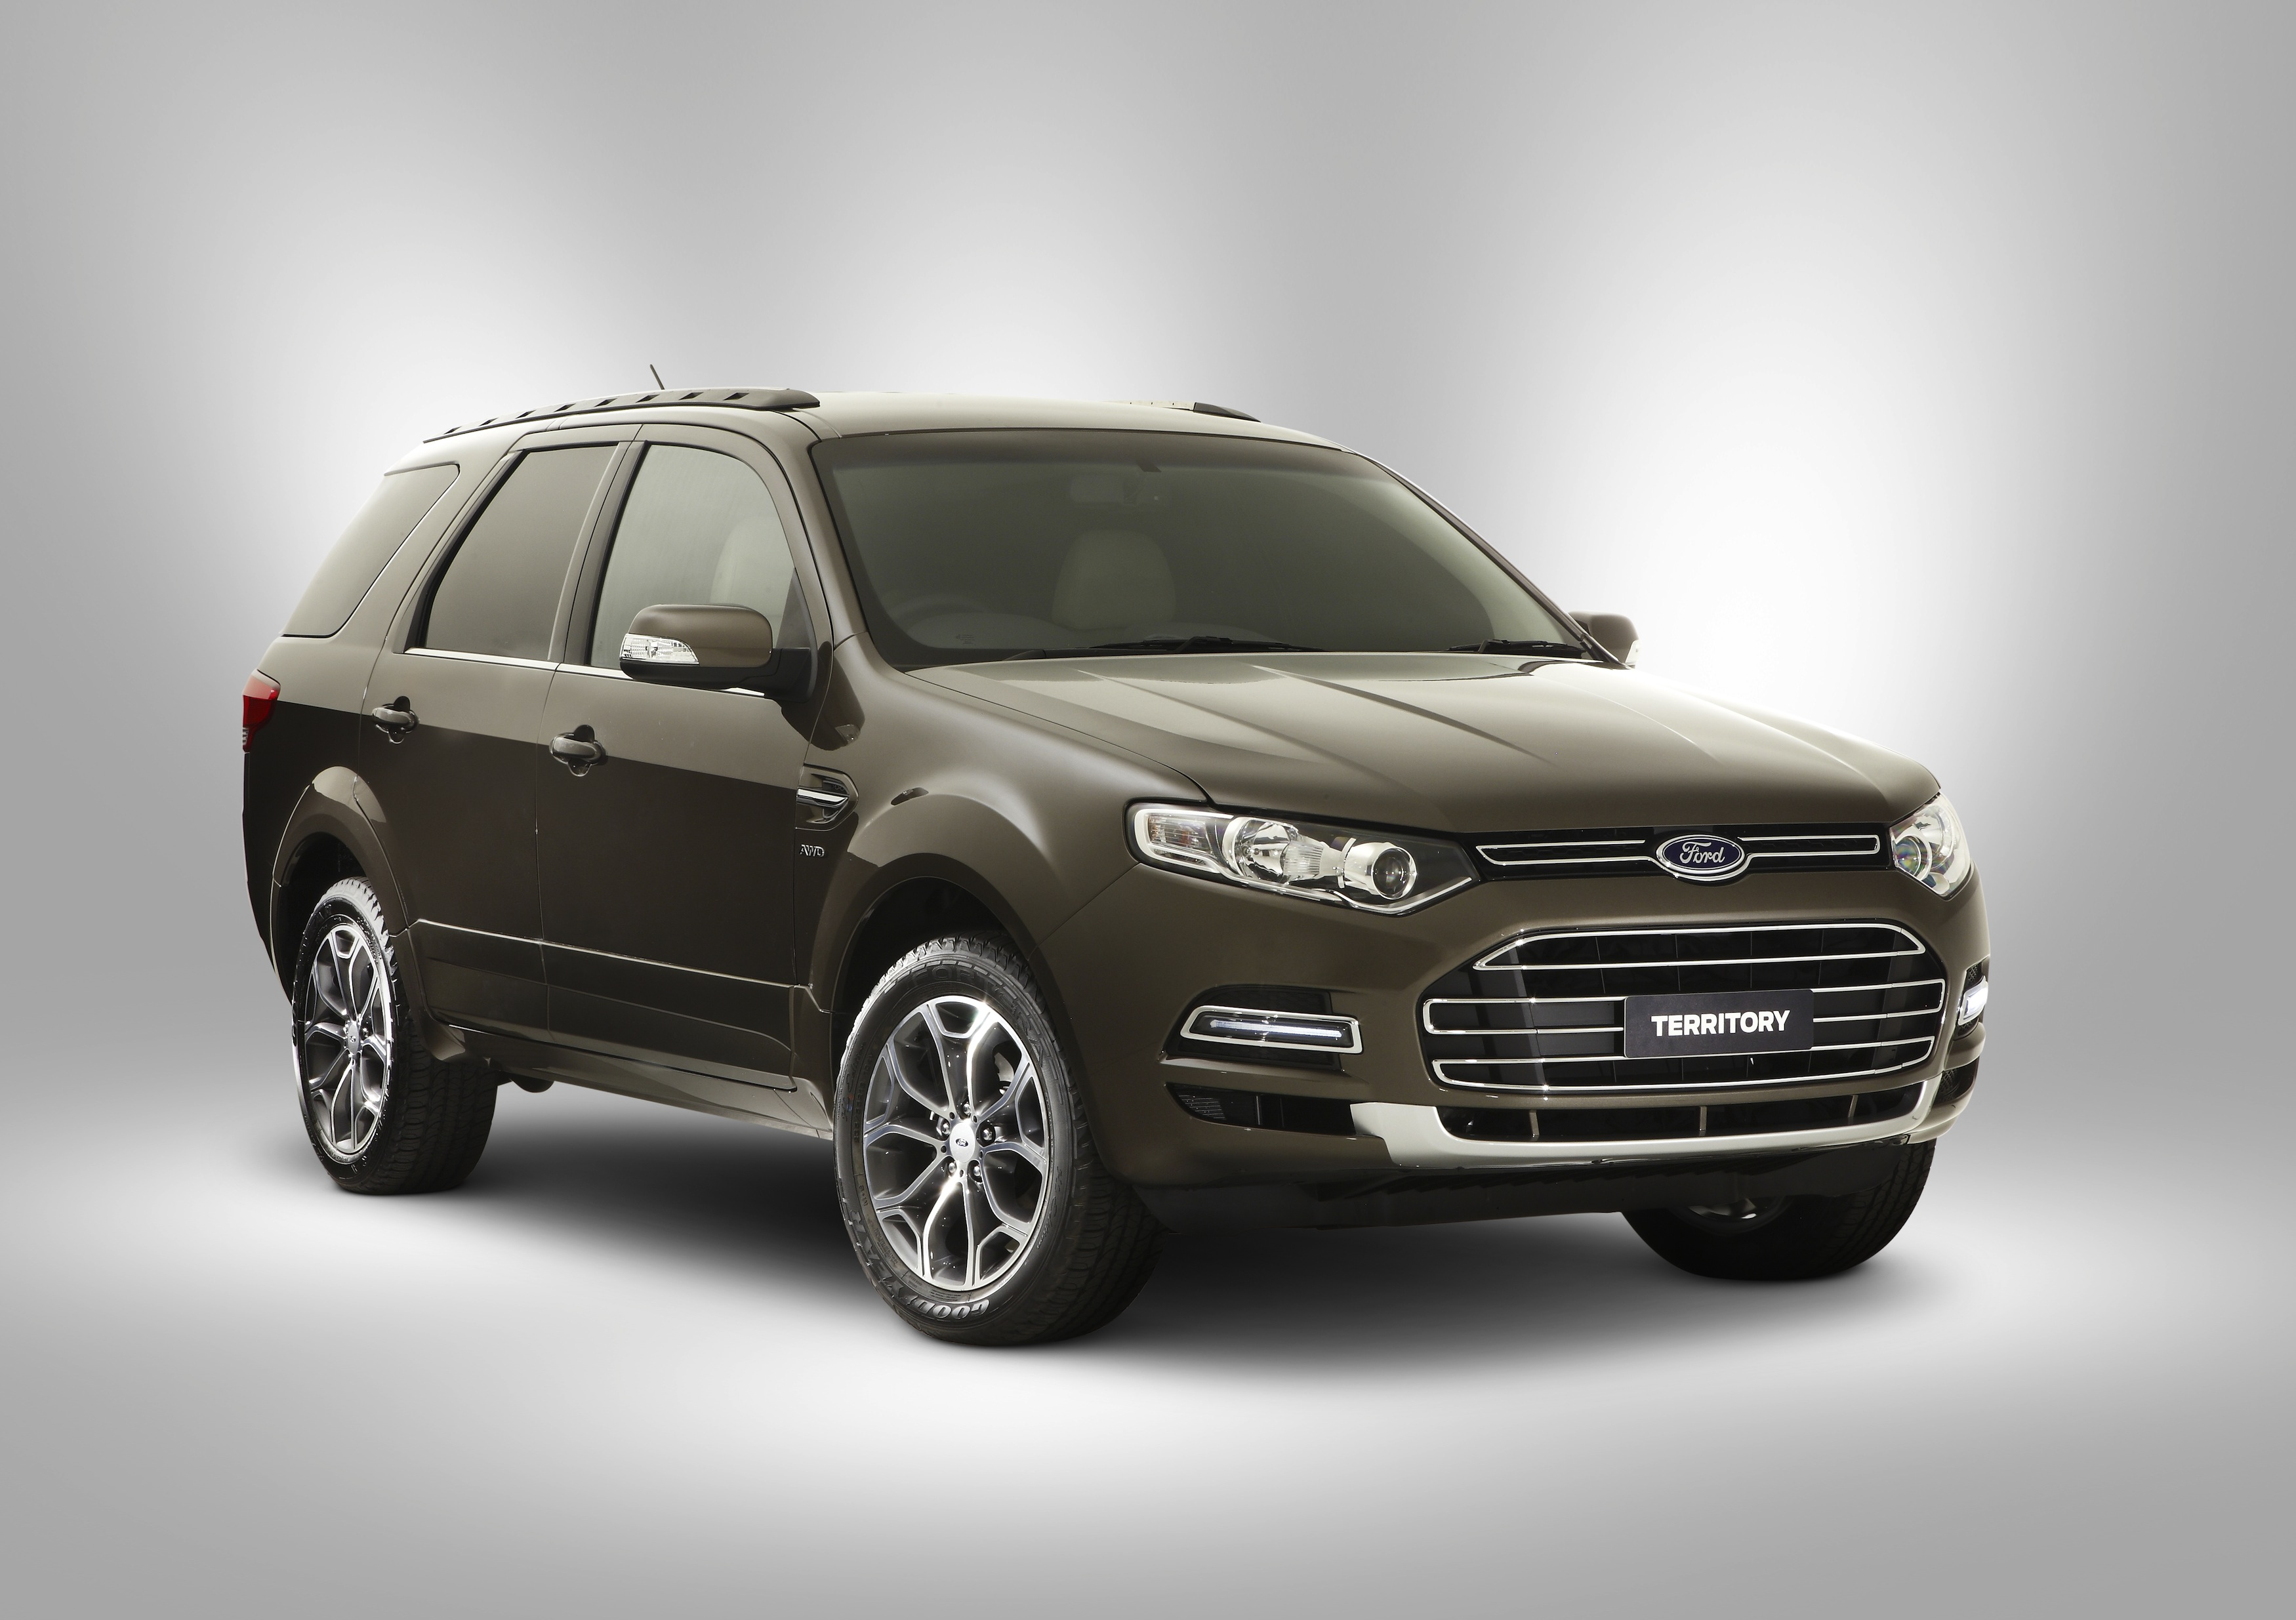 Ford Falcon And Territory Safe Until 2016 Photos 1 Of 9